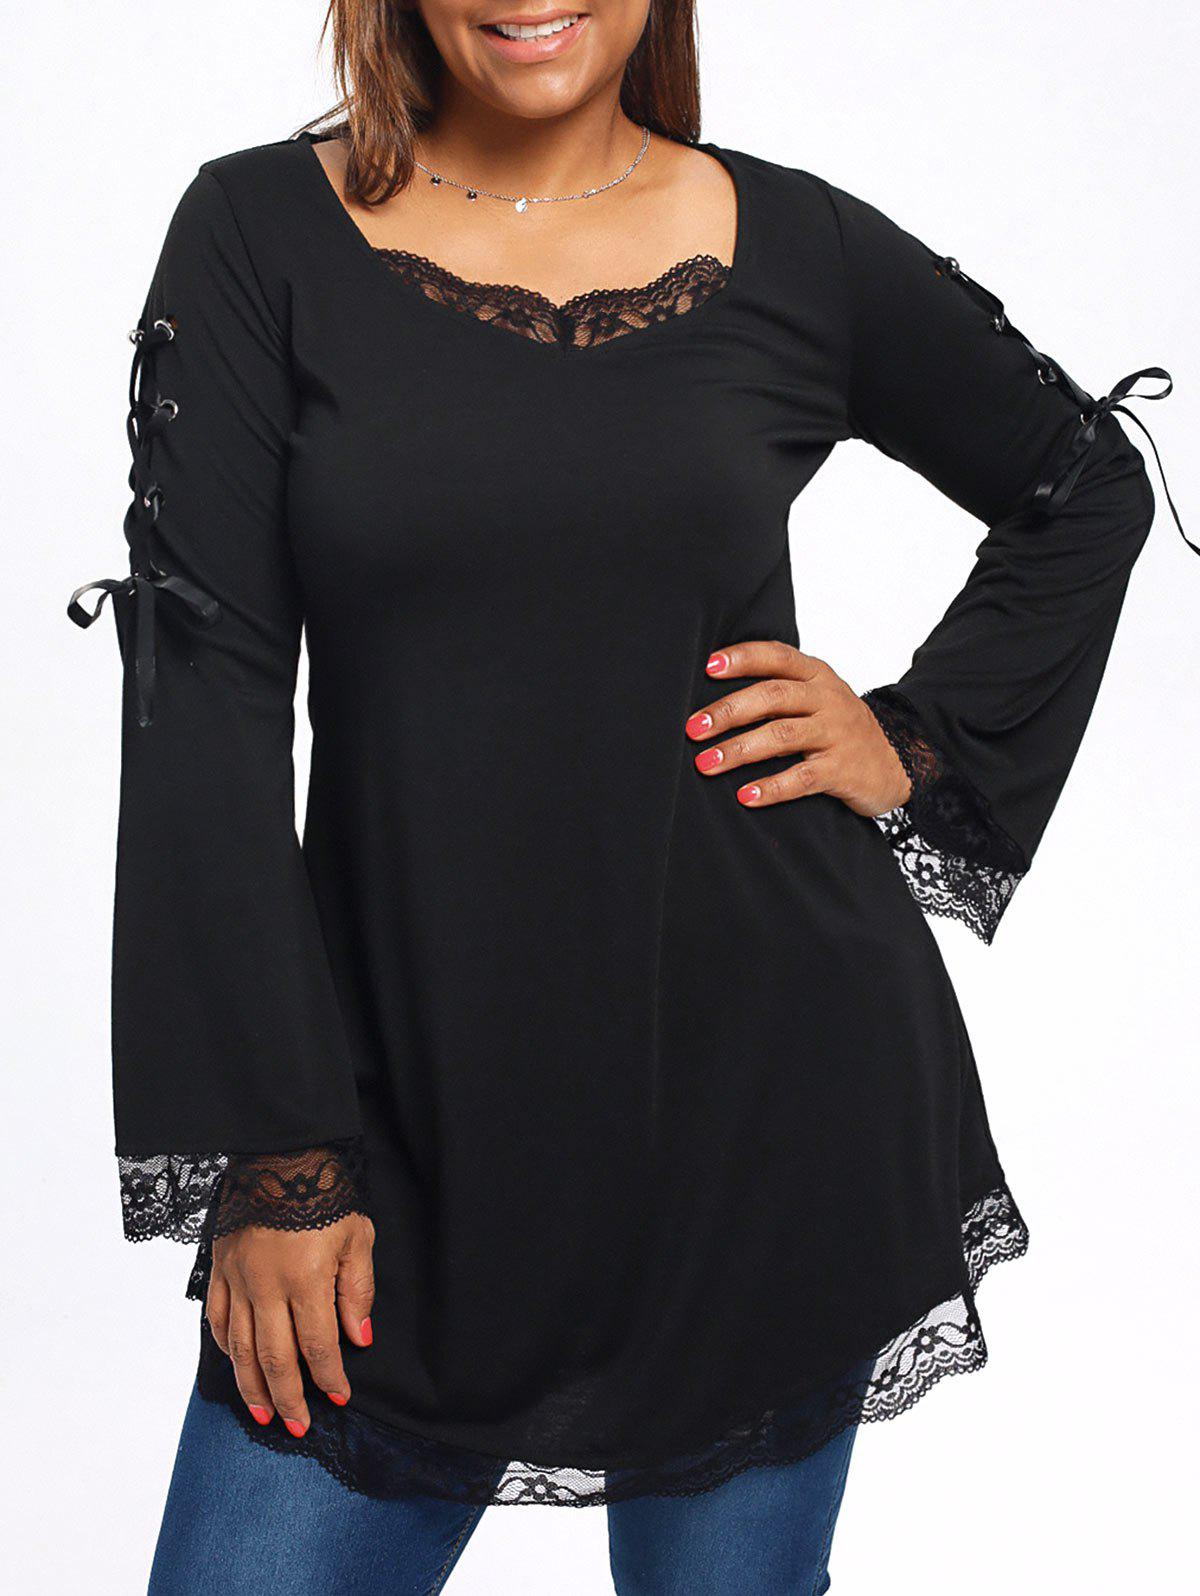 Lace Trim Plus Size Long Sleeve Tunic T-shirtWOMEN<br><br>Size: 2XL; Color: BLACK; Material: Polyester; Shirt Length: Regular; Sleeve Length: Full; Collar: U Neck; Style: Fashion; Season: Fall,Spring; Sleeve Type: Flare Sleeve; Embellishment: Criss-Cross,Lace,Ribbons; Pattern Type: Solid; Weight: 0.3400kg; Package Contents: 1 x T-shirt;